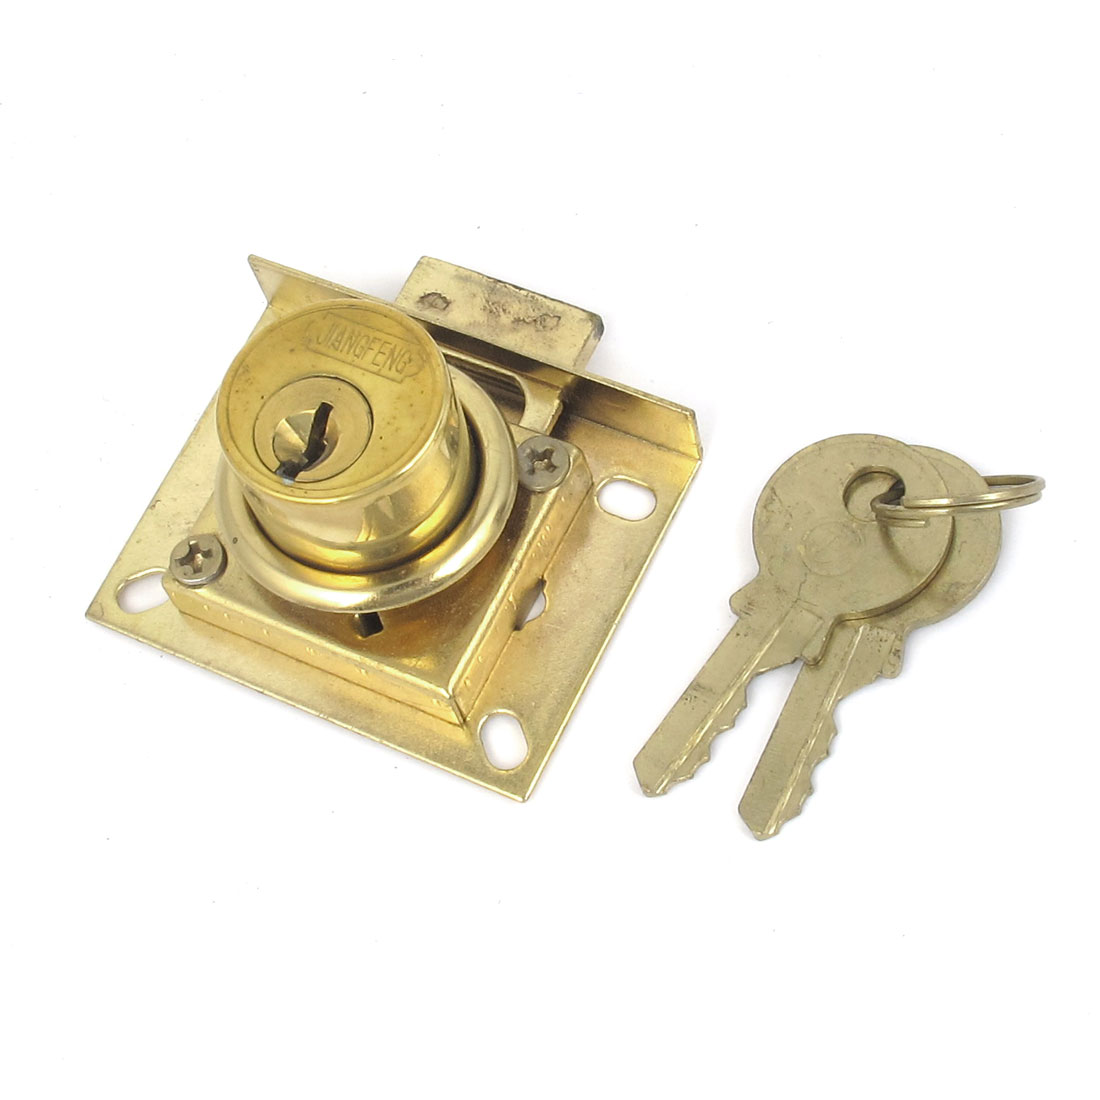 Gold Tone 22mm Dia Cylinder Head Metal Cabinet Security Drawer Lock w 2 Keys